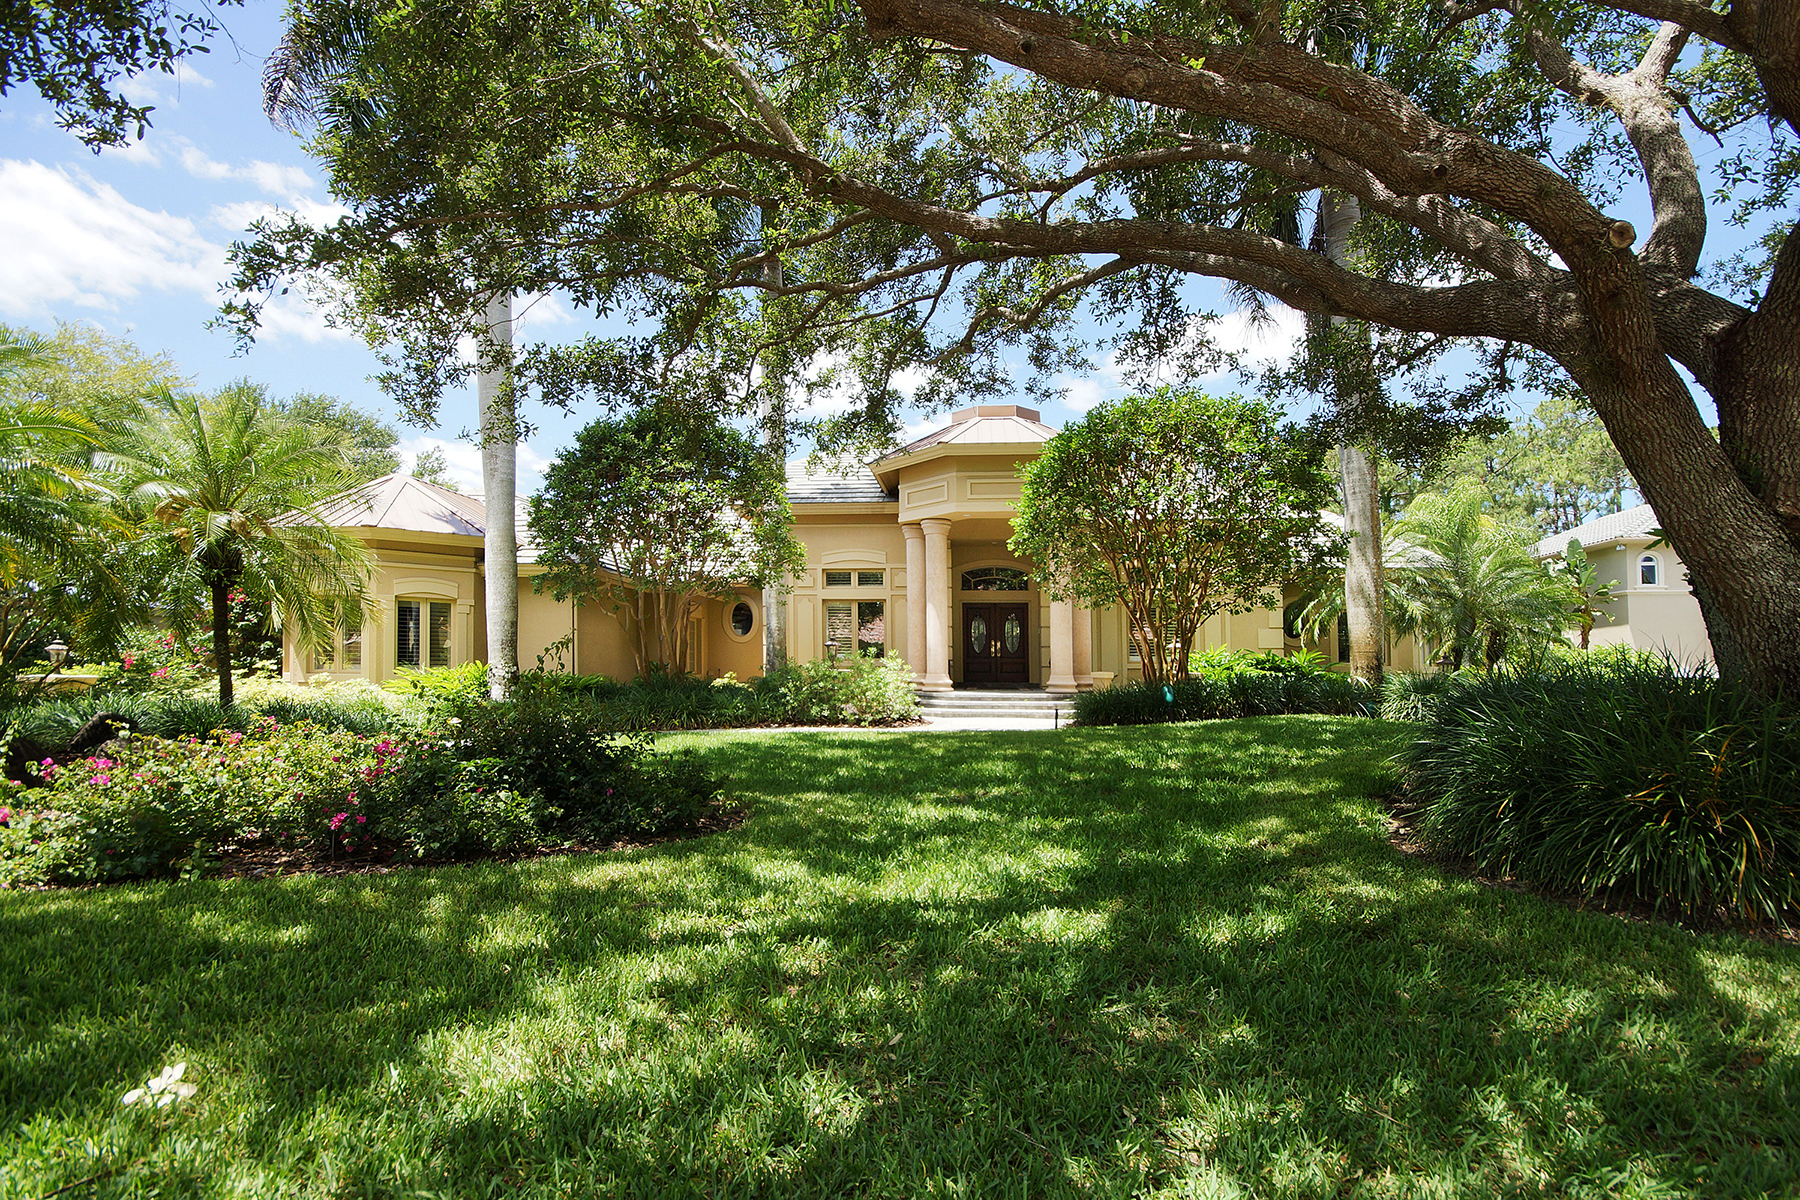 Single Family Home for Sale at 2629 Bulrush Ln , Naples, FL 34105 2629 Bulrush Ln Naples, Florida, 34105 United States